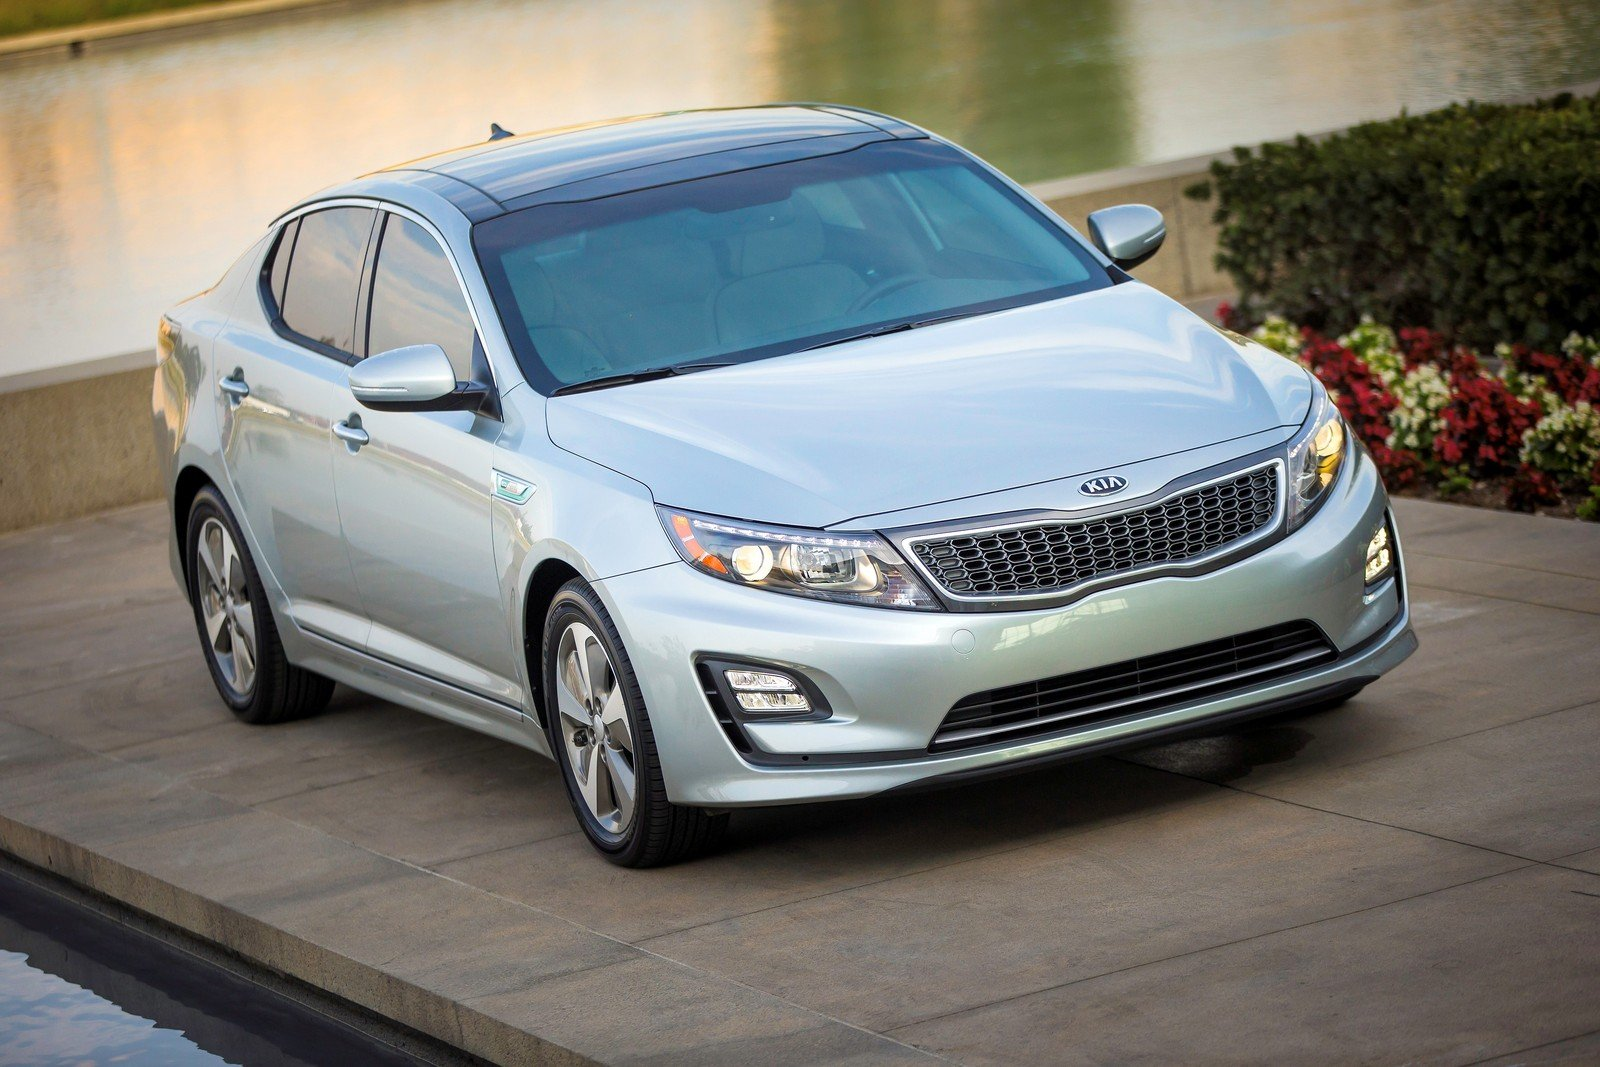 2014 kia optima hybrid review gallery top speed. Black Bedroom Furniture Sets. Home Design Ideas